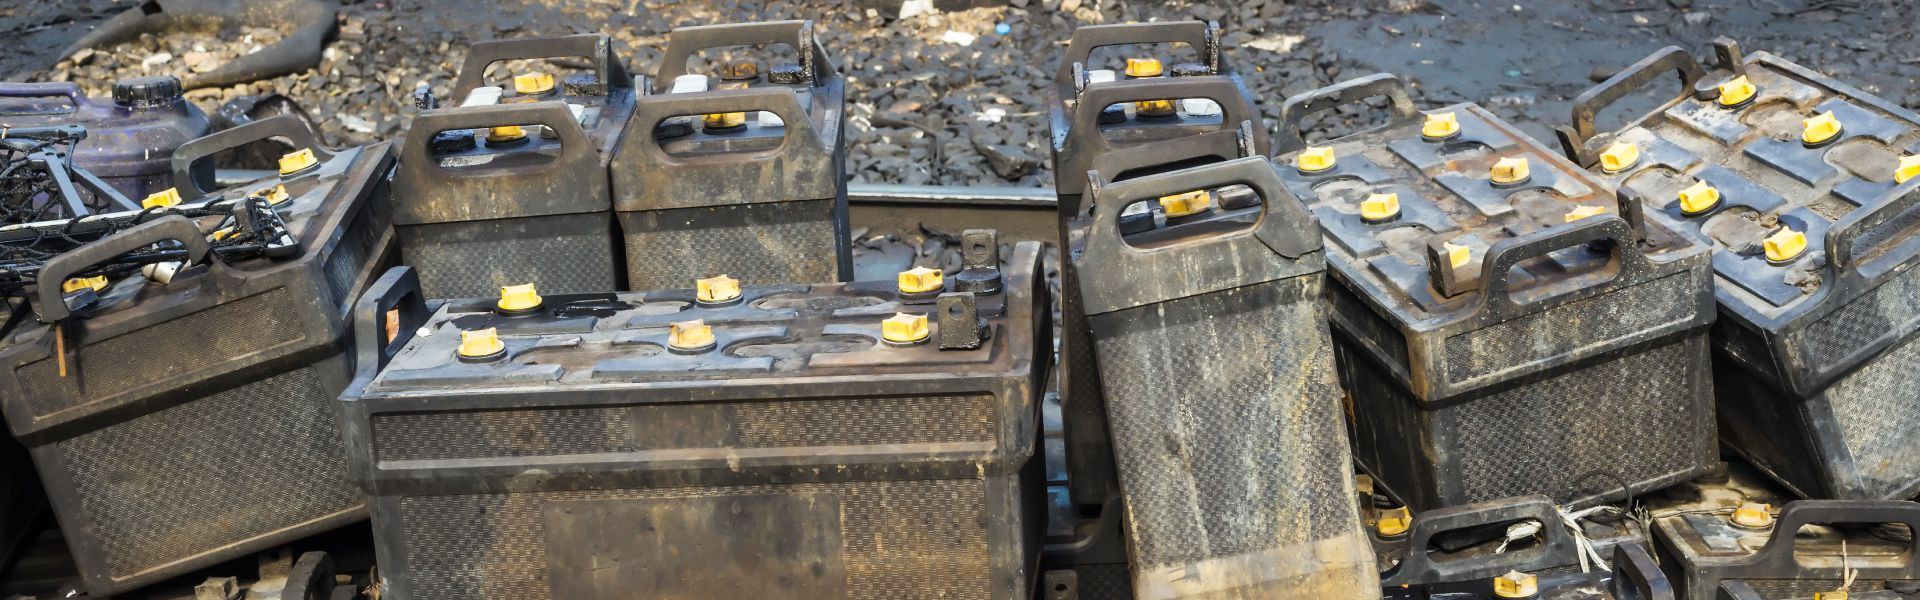 Battery Recycling | Car Battery Recycling | Canadian Energy